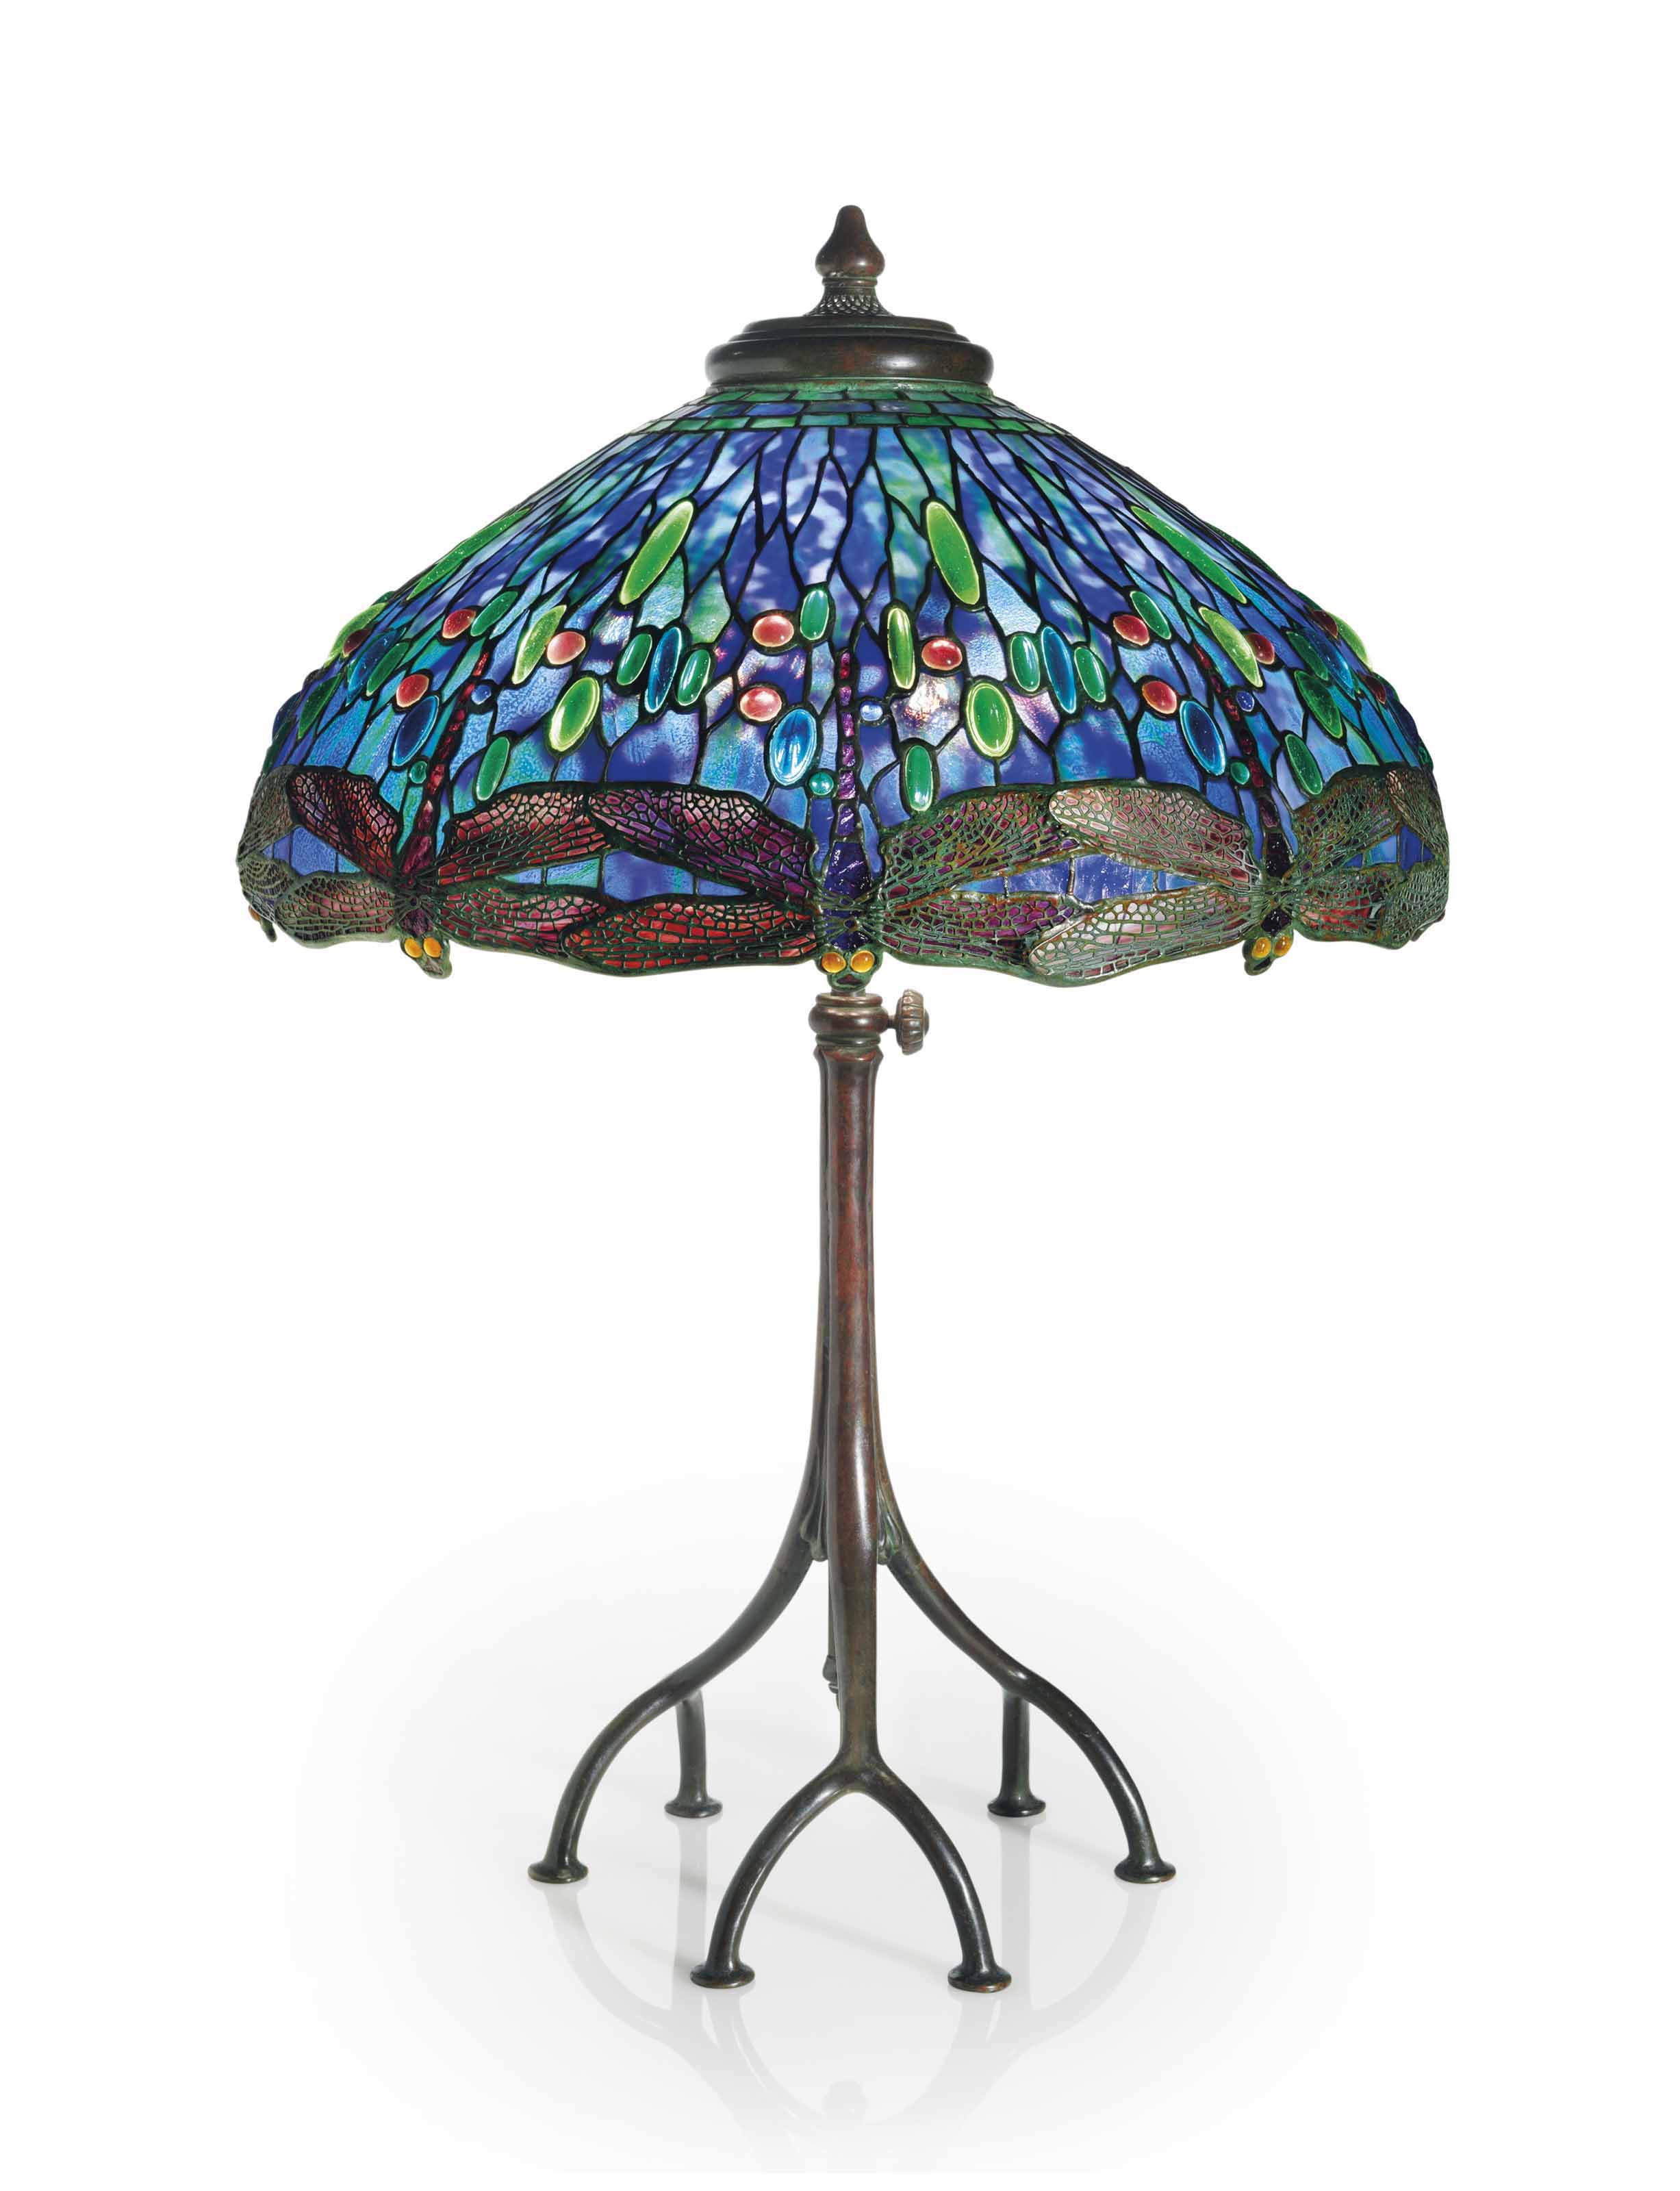 Tiffany Studios, A U0027Drophead Dragonflyu0027 Leaded Glass And Bronze Table Lamp,  Circa 1905. 32 In (81.3 Cm) High, 22⅛ In (56.2 Cm) Diameter Of Shade.